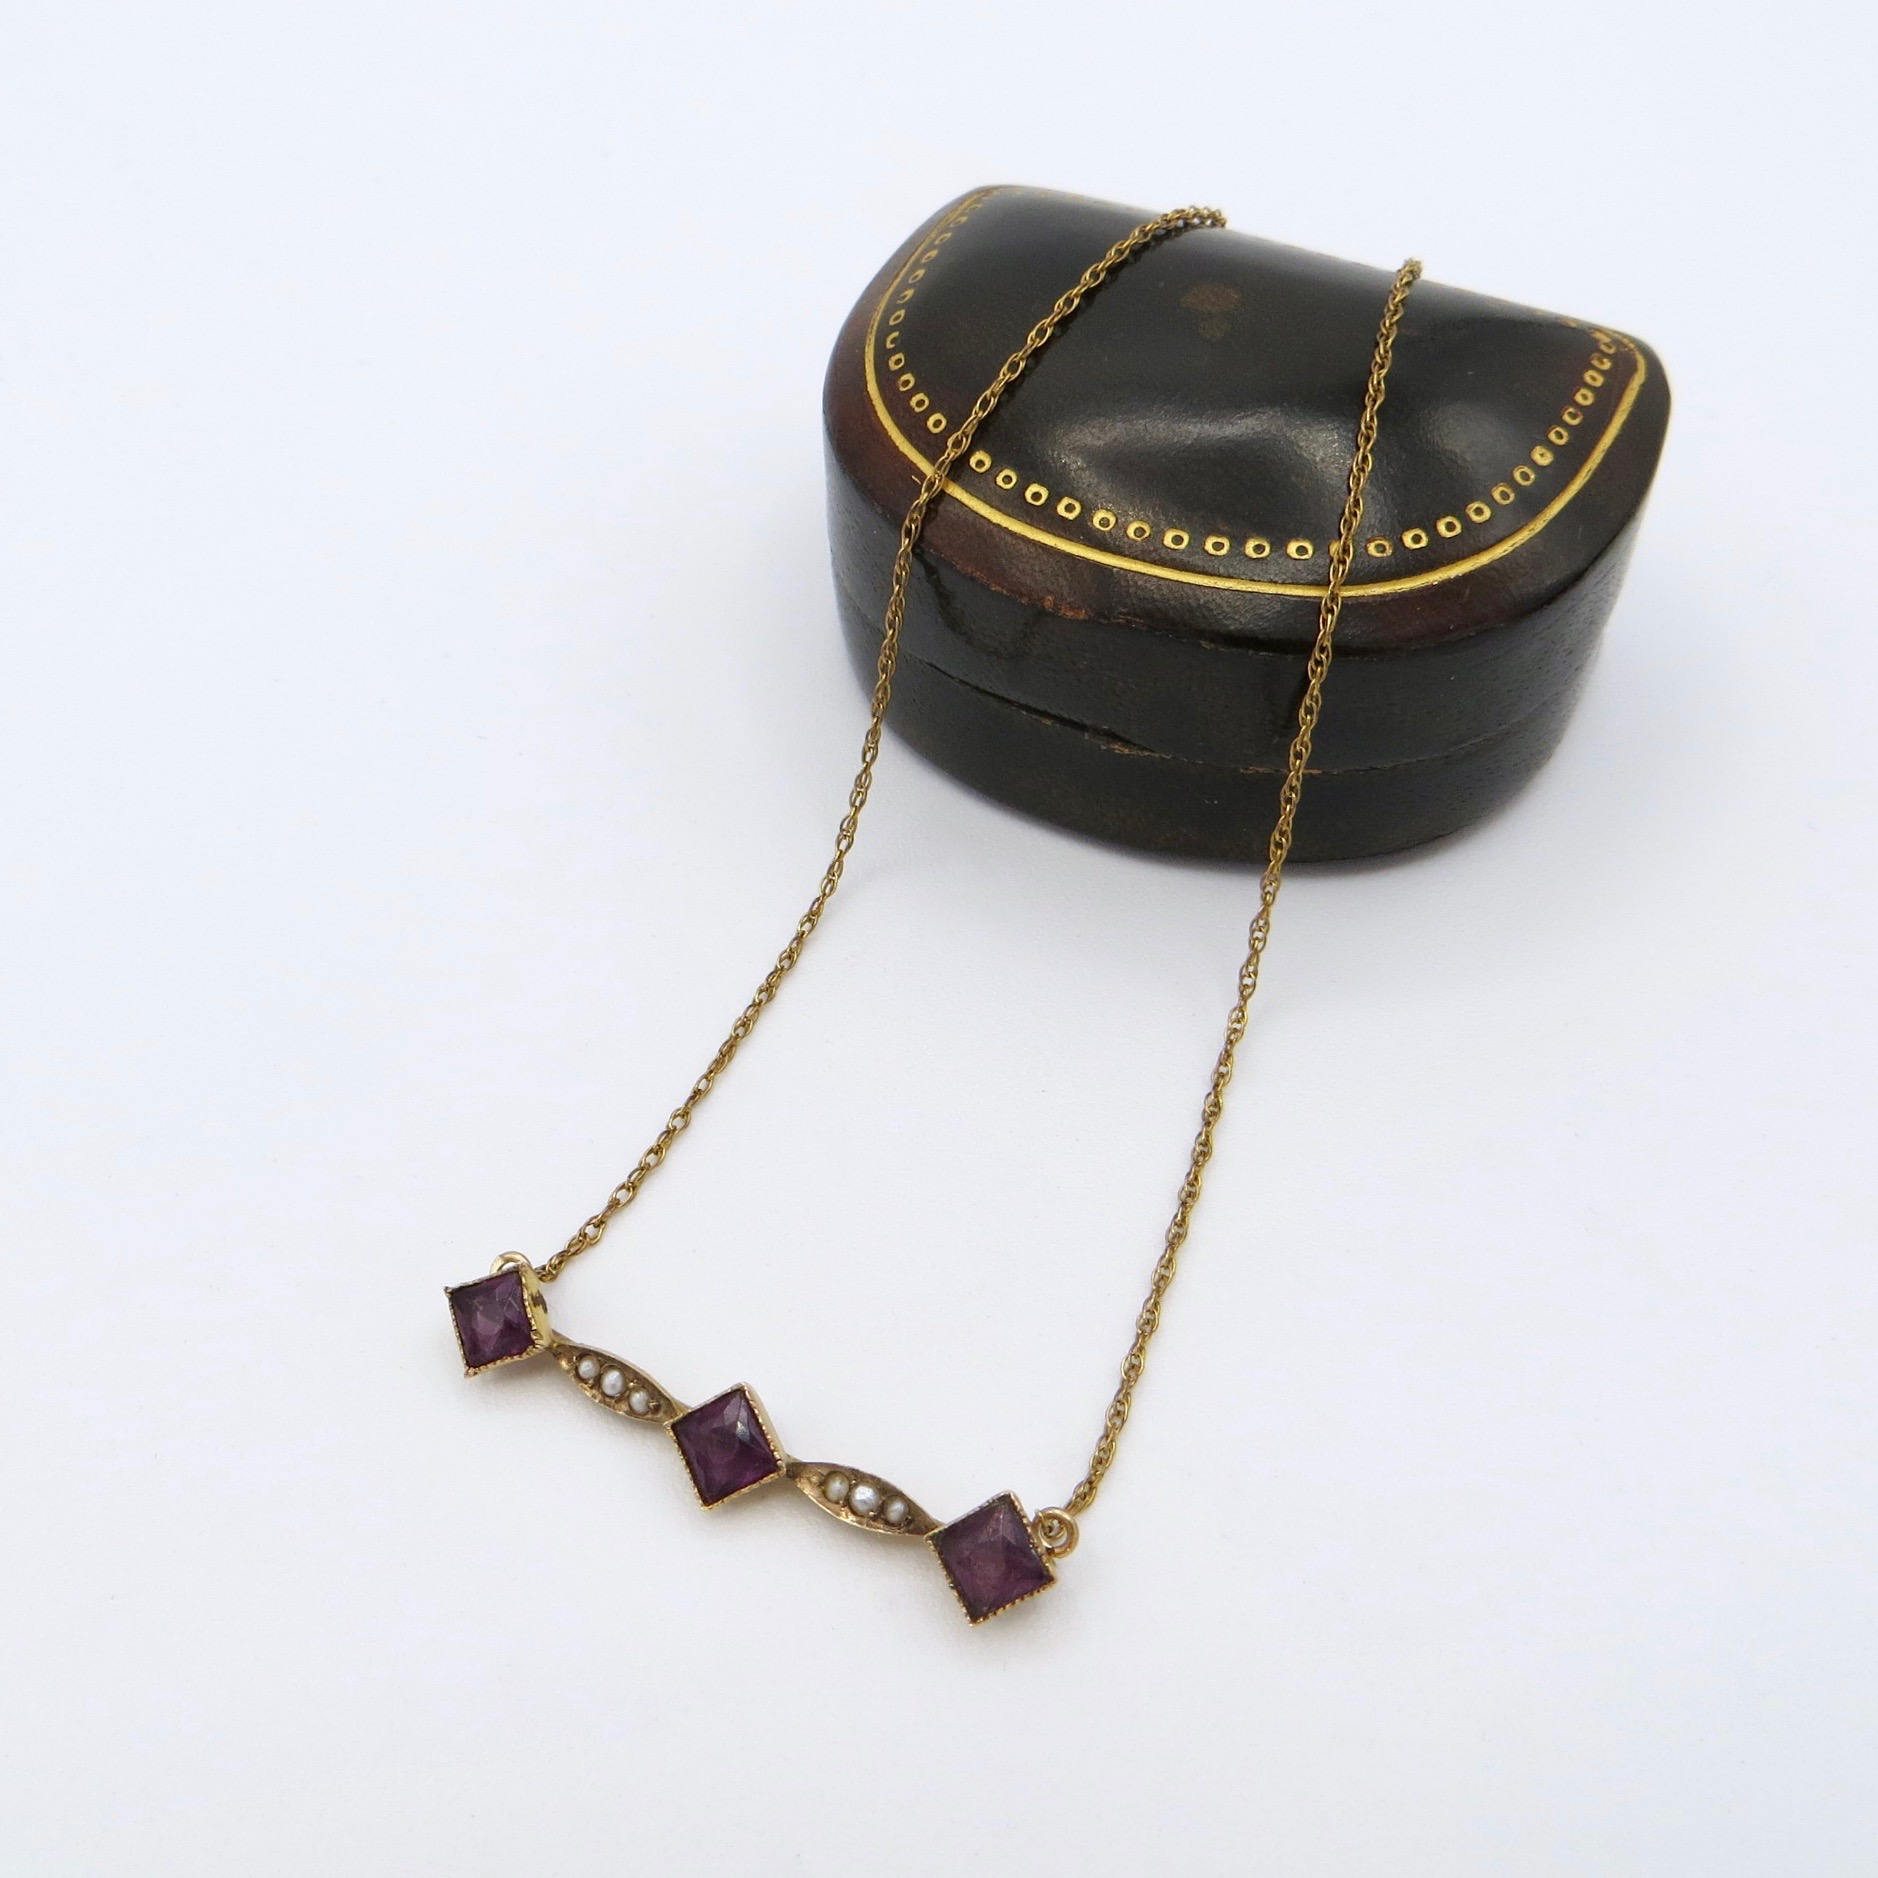 9kt Pearl & Amethyst Necklace (GF Chain)